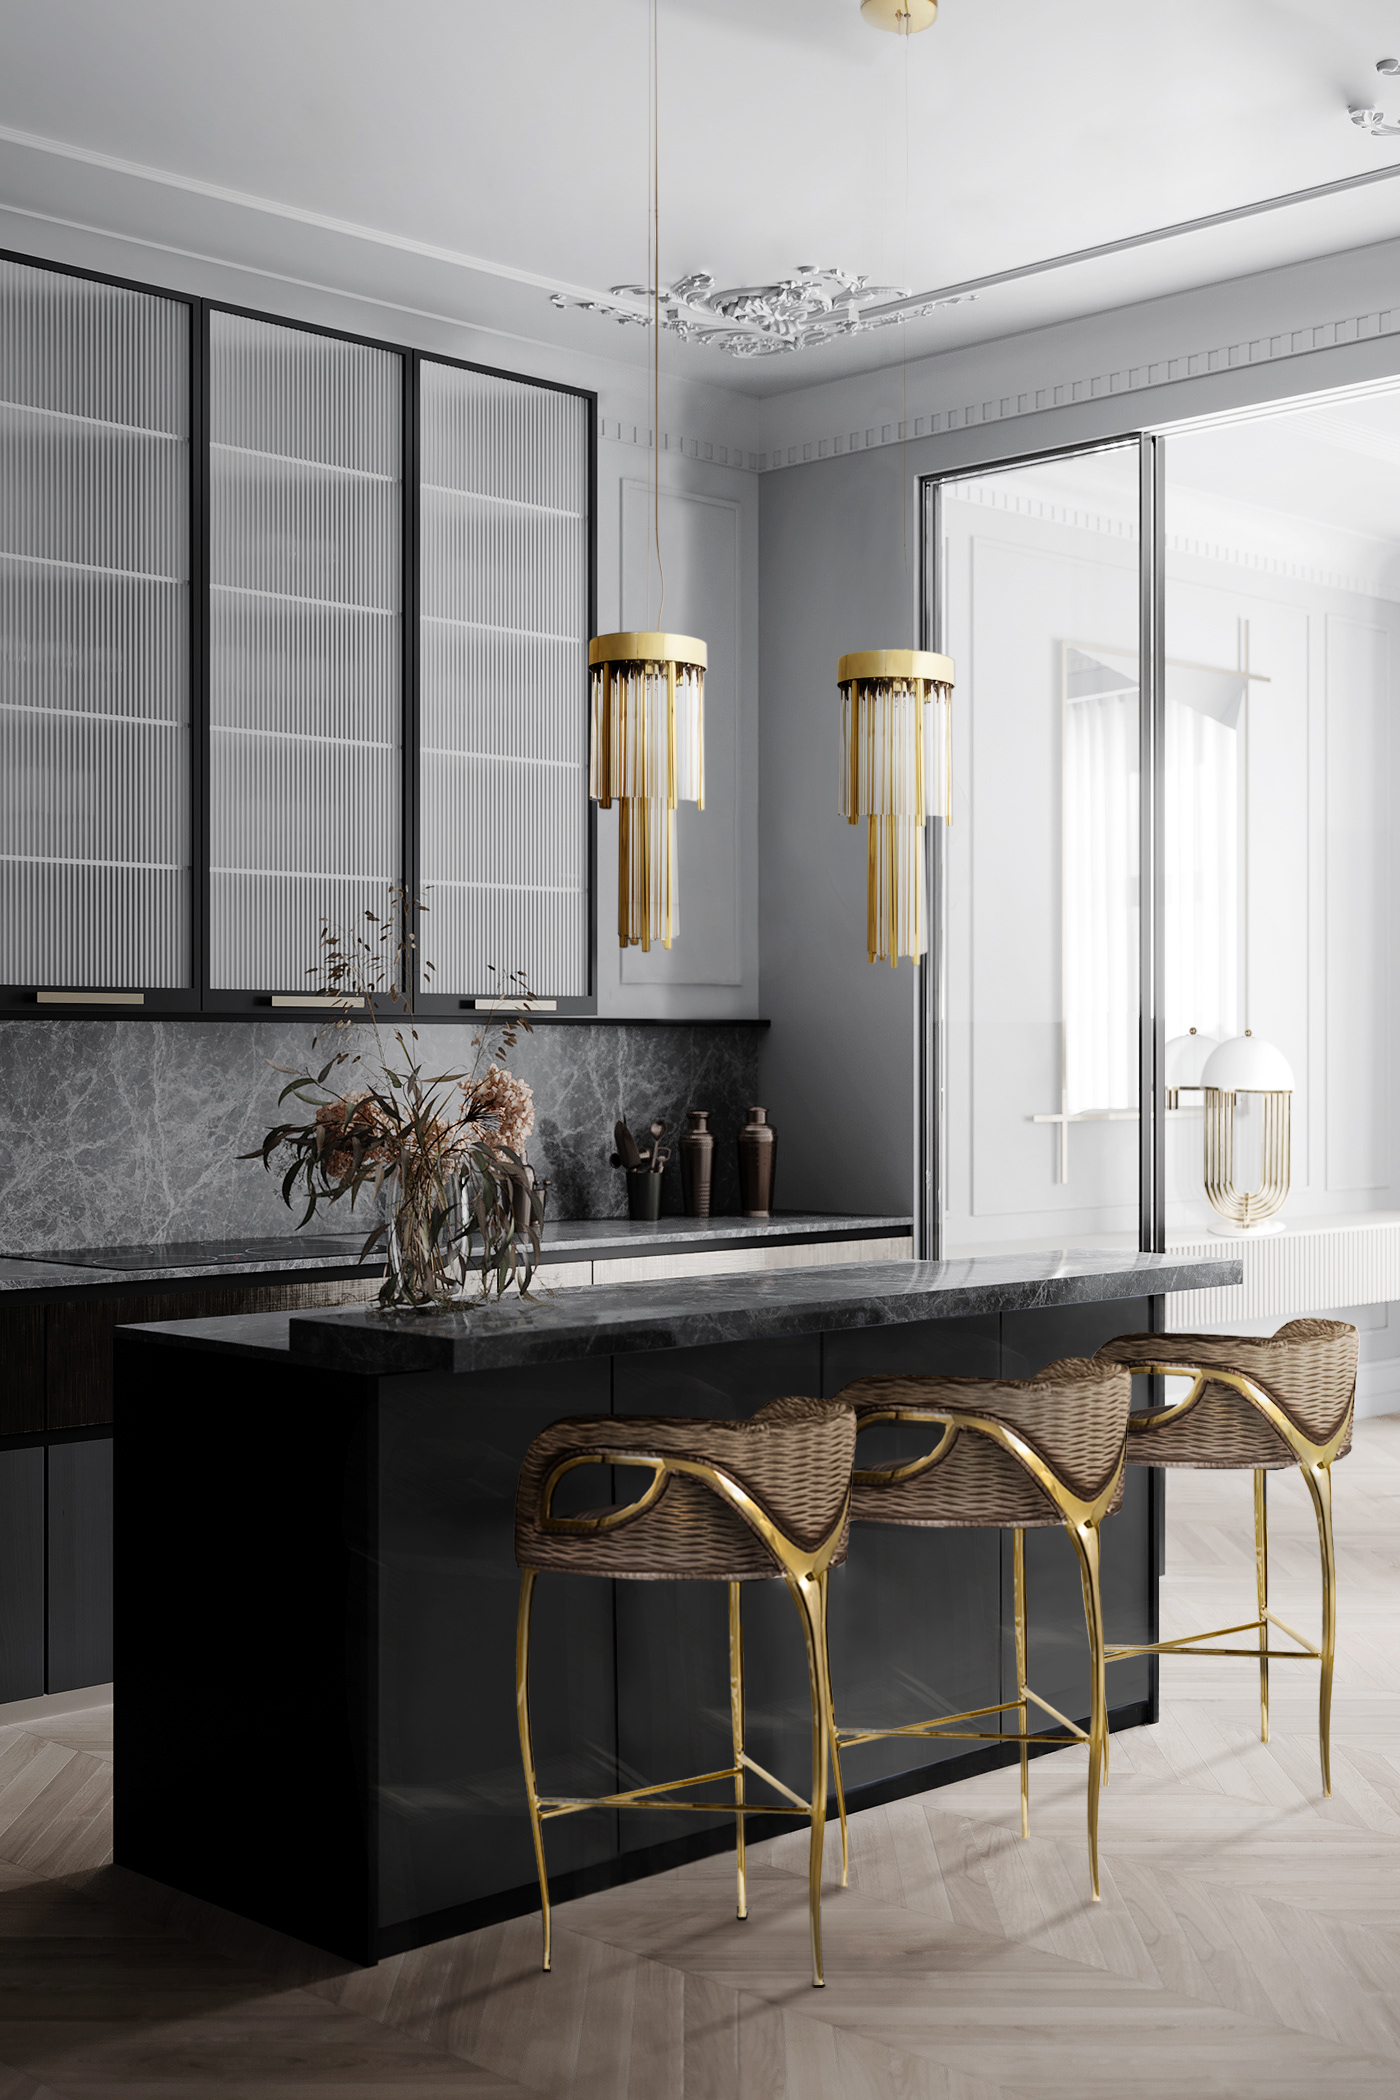 Unique Lighting Ideas For Your Stylish Kitchen